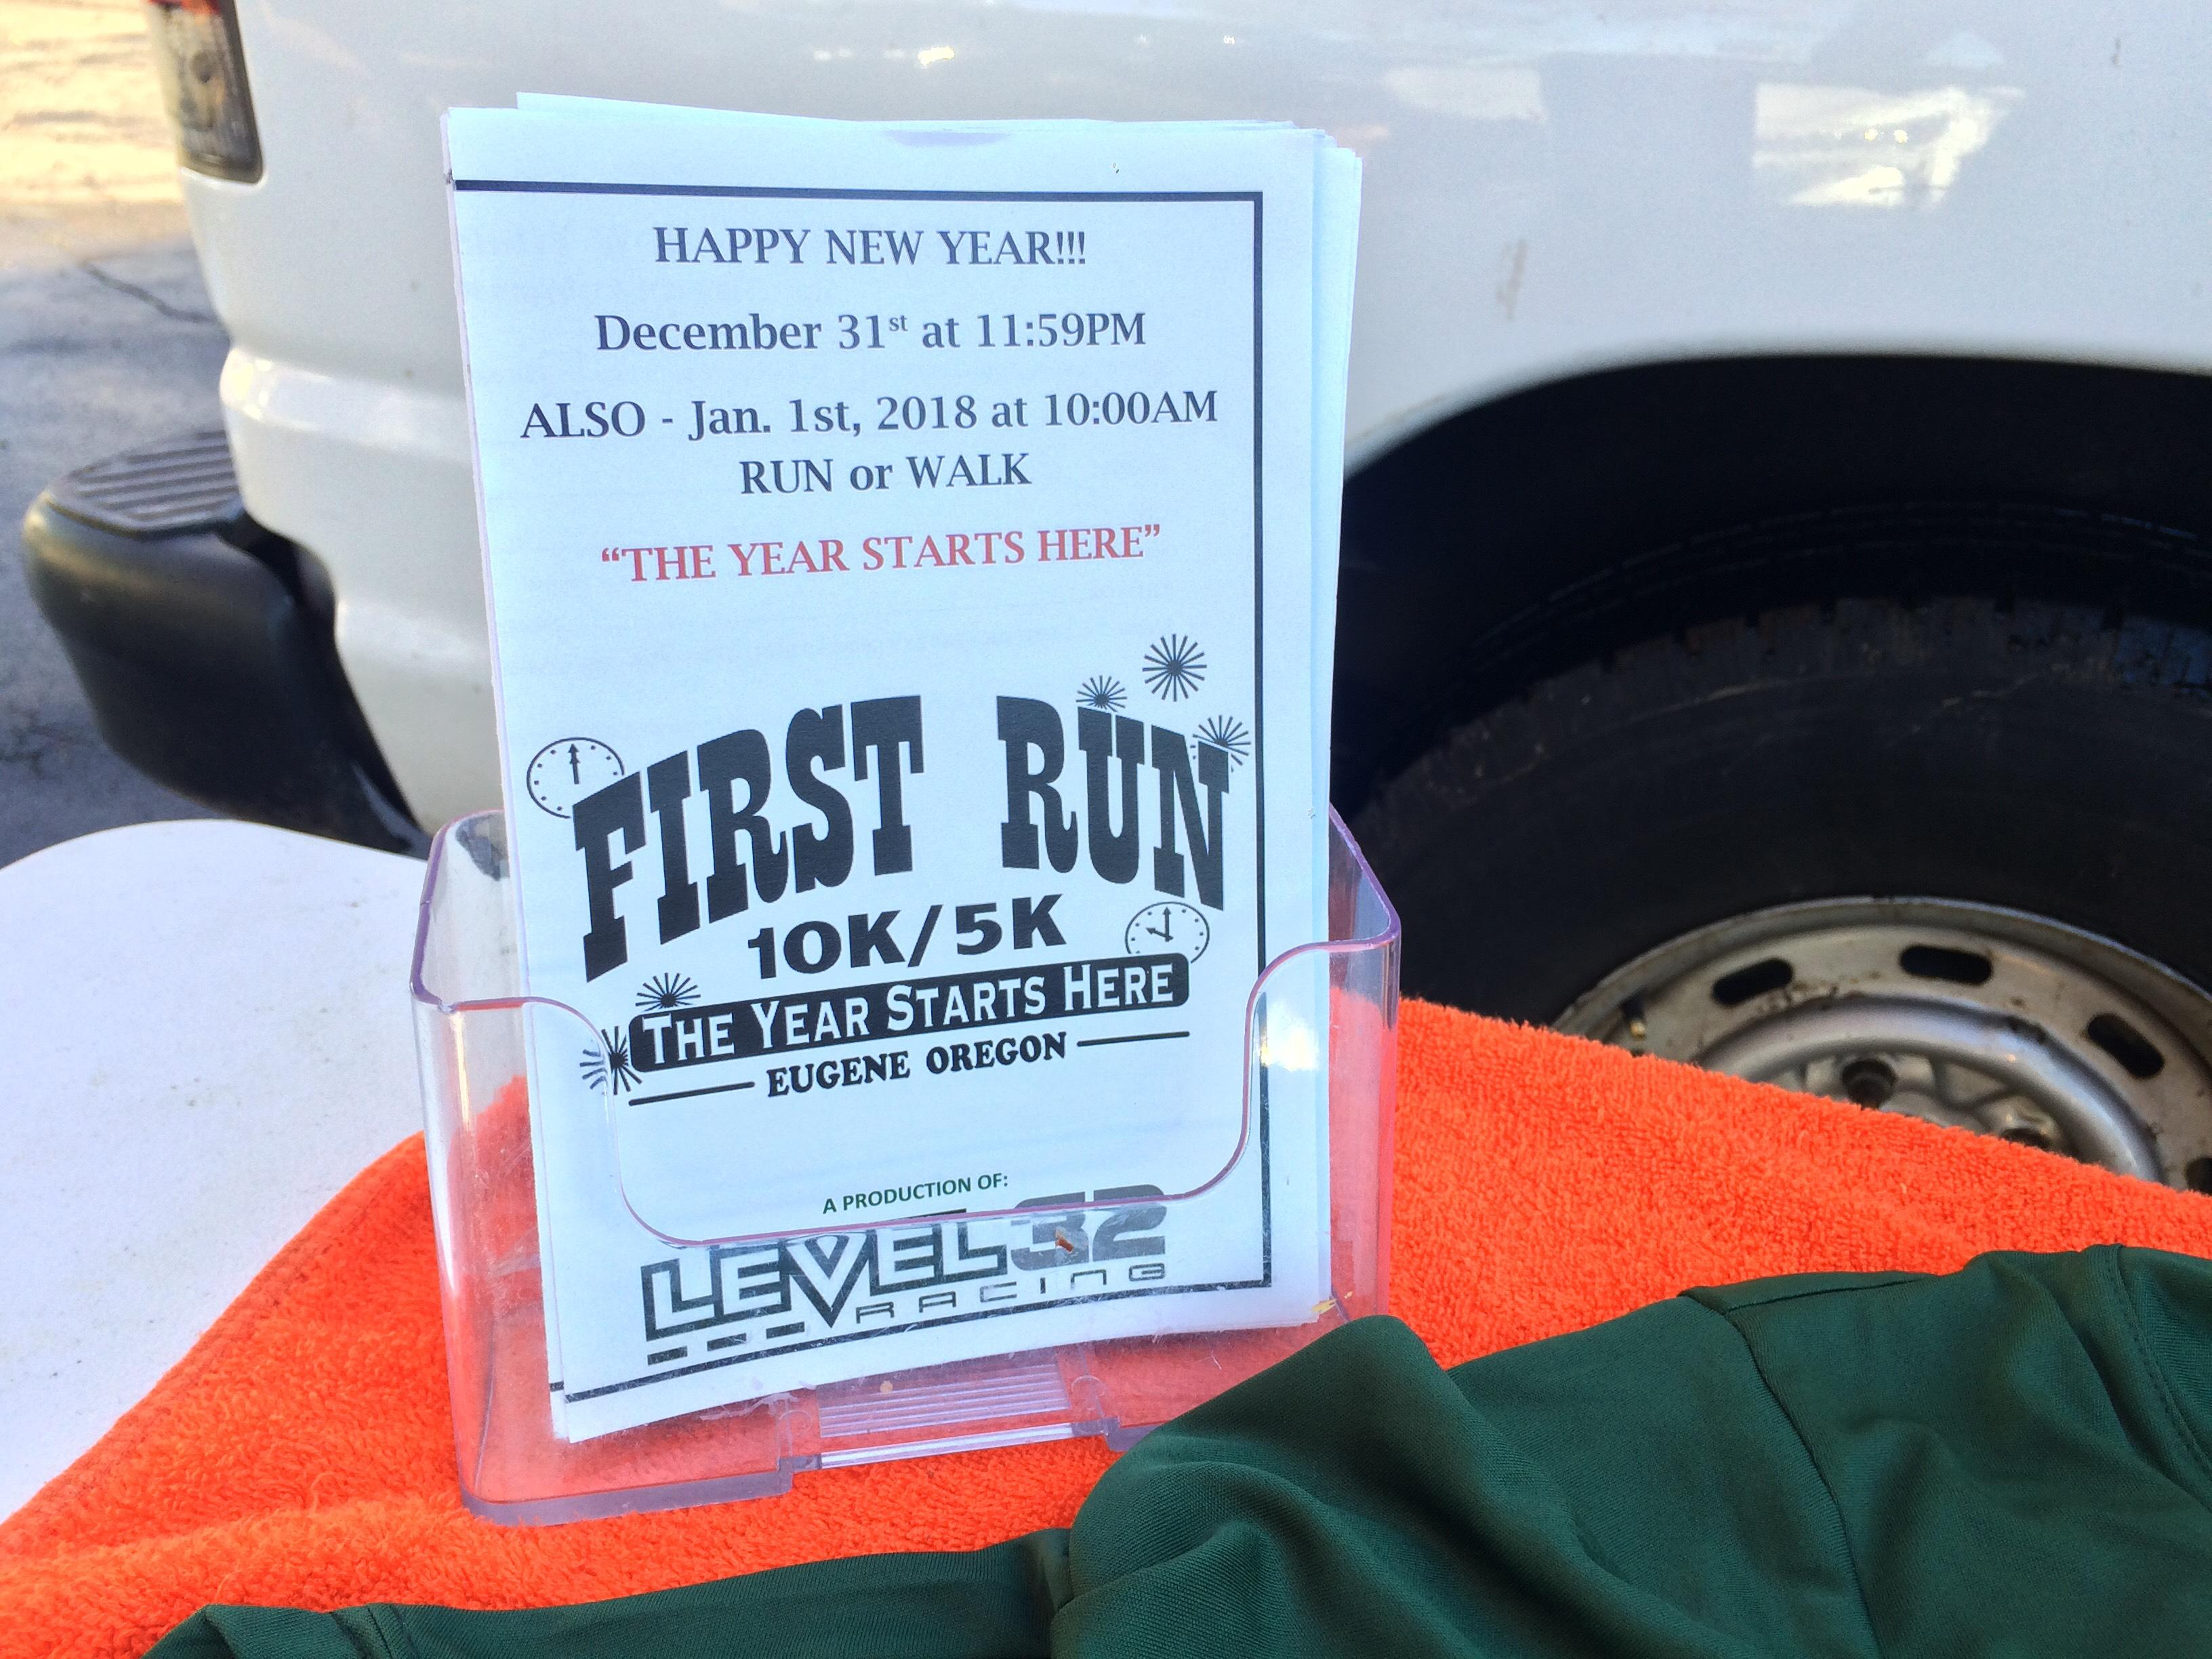 More than 150 runners will take to the streets to run into the new year with the 'First Run' 10K and 5K.